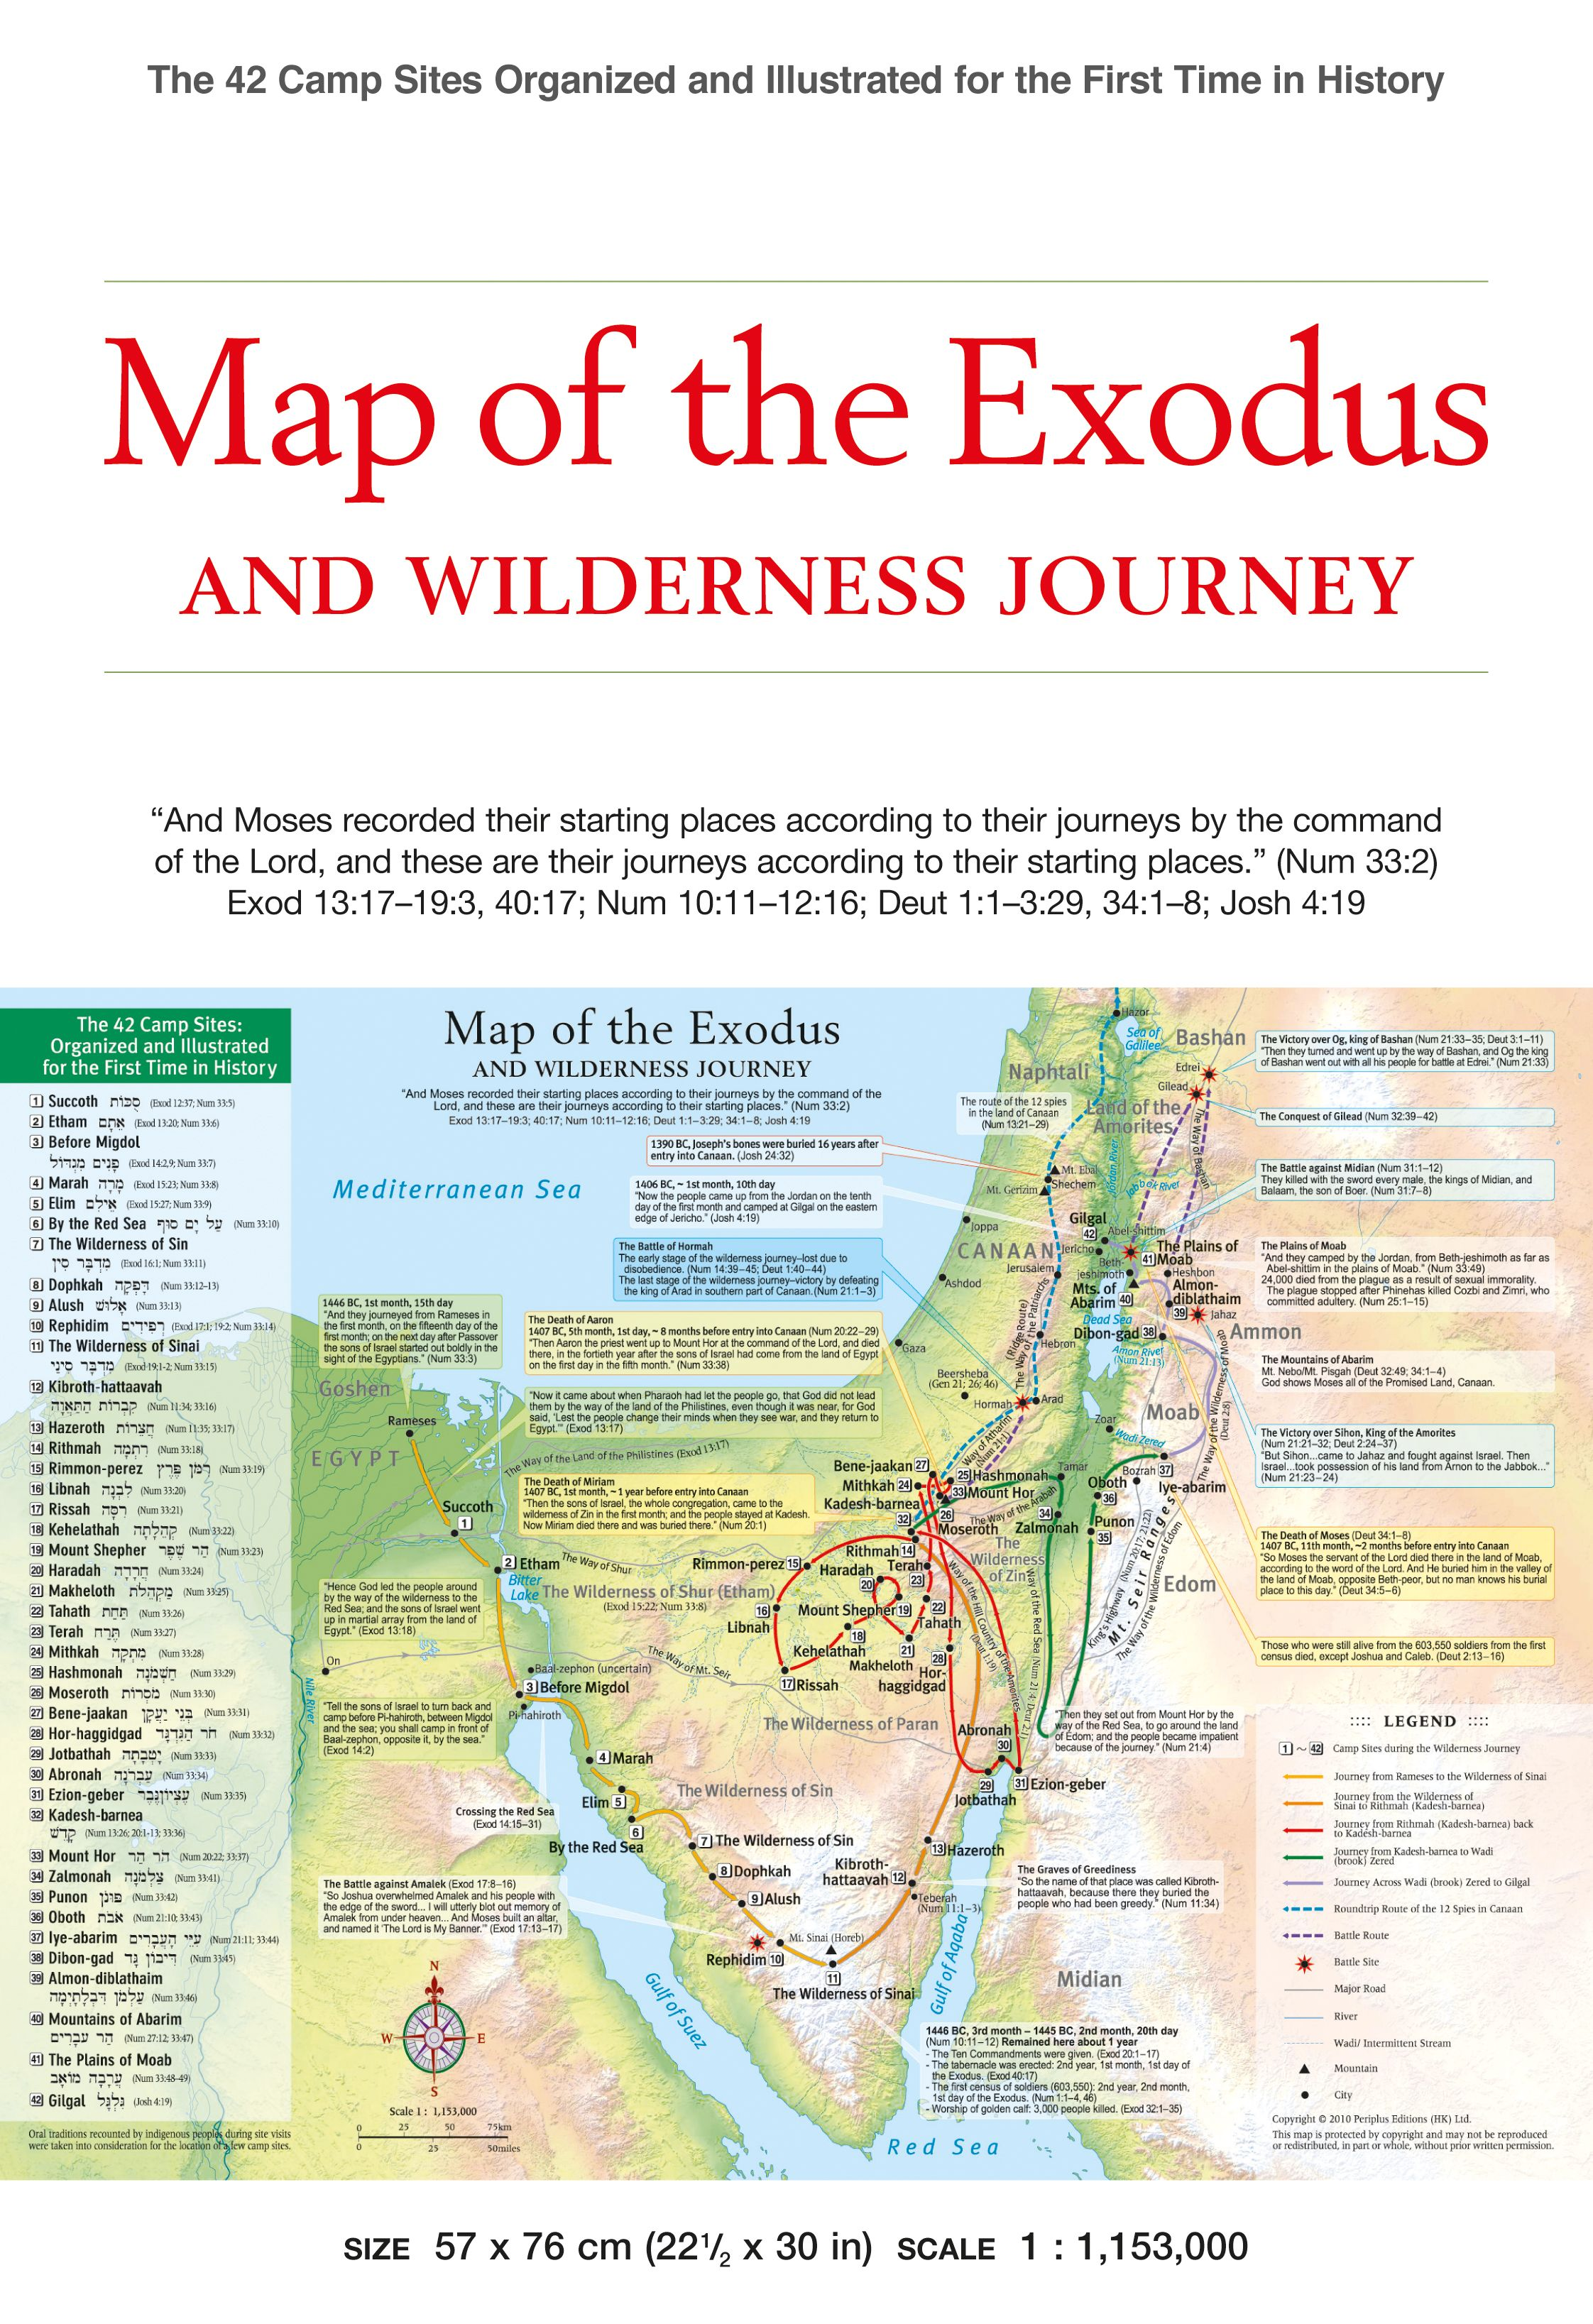 This Map Shows The 42 Camp Sites During The Wilderness Journey